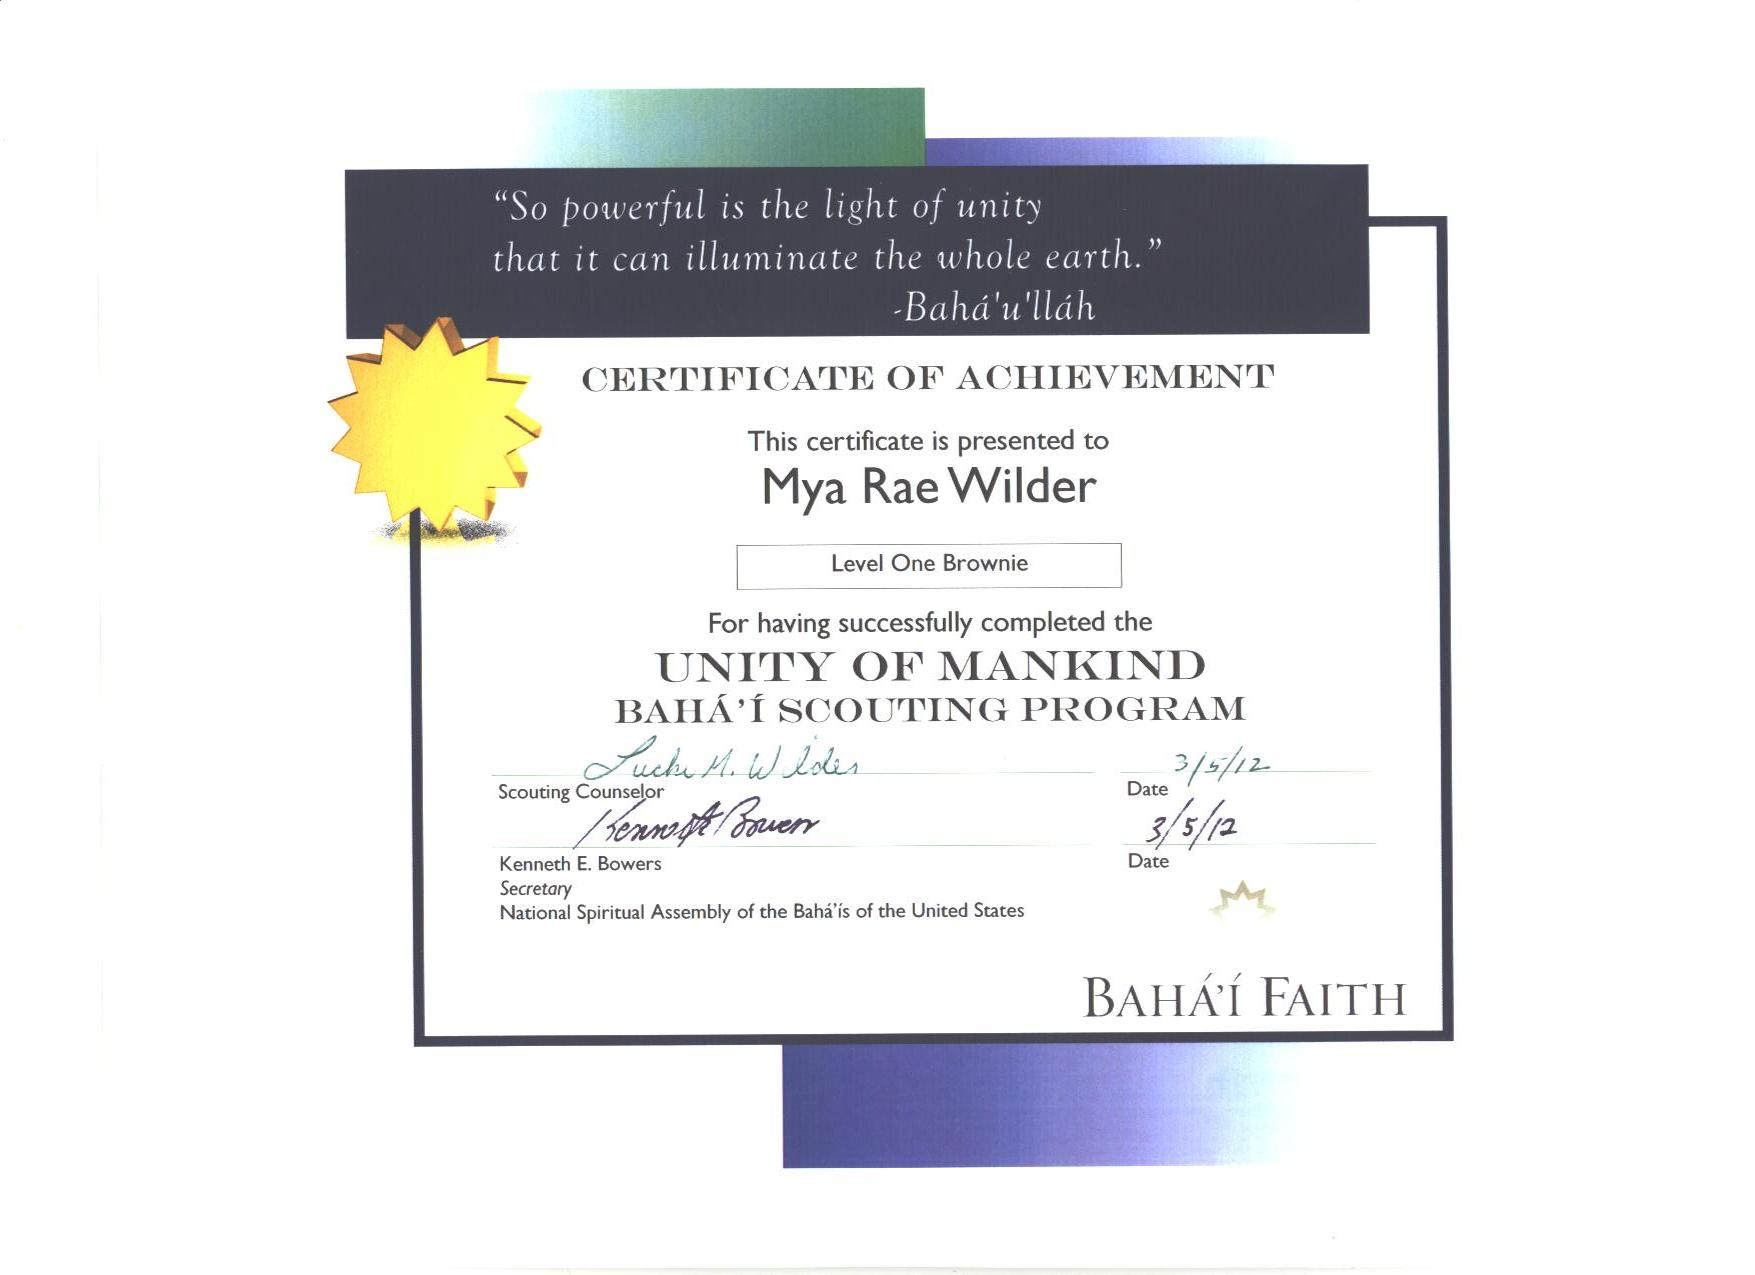 Unit of Mankind Certificate of Achievement